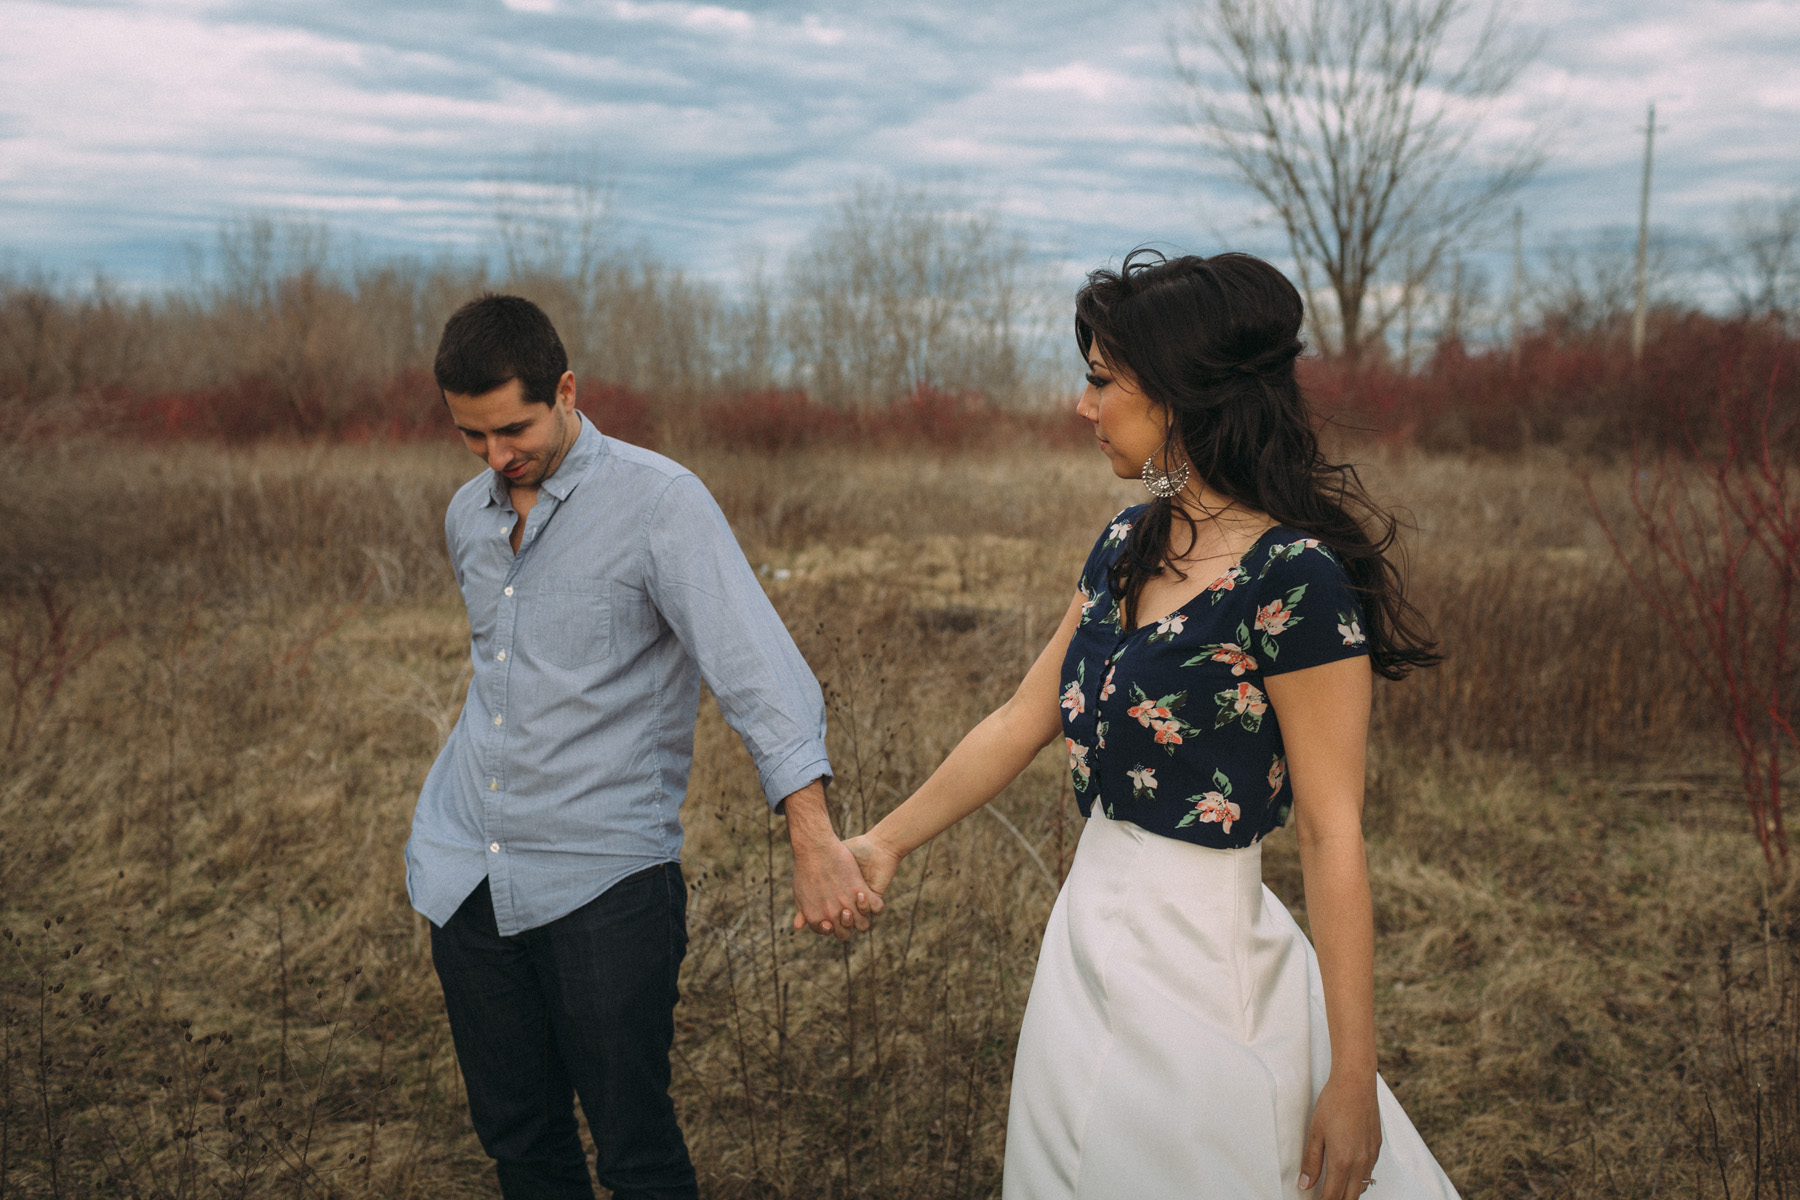 modern-Toronto-engagement-photography-Esplanade-by-Artanis-Collective-wedding-photographer-Sam-Wong_08.jpg